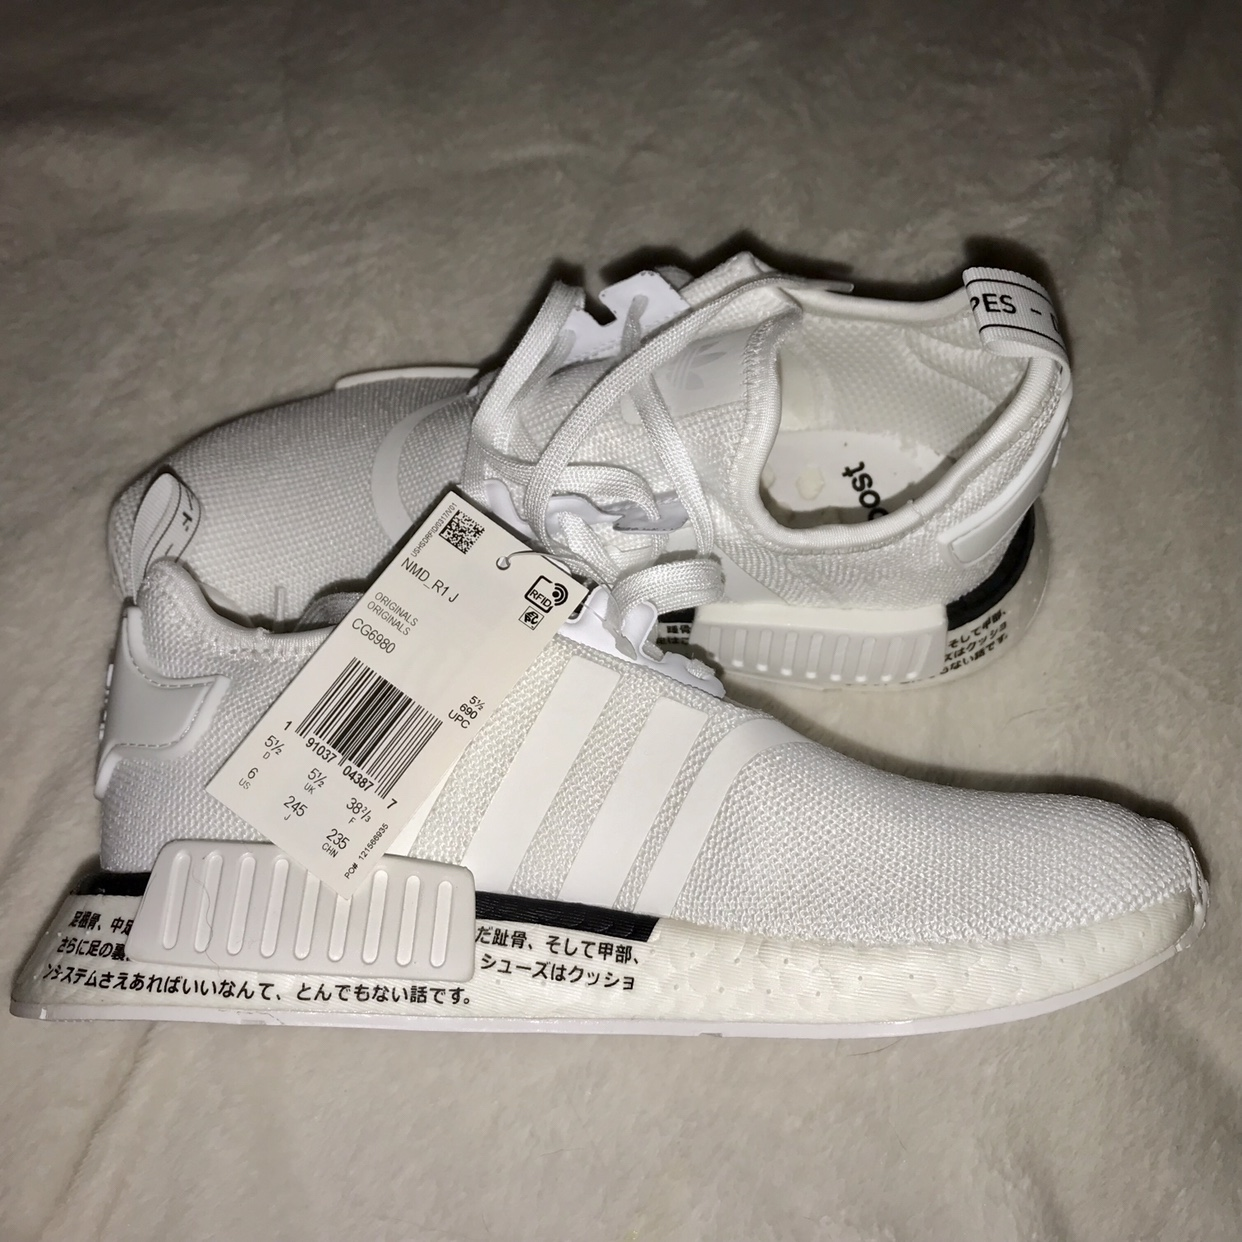 Adidas Nmd R1 Japan Boost White Limited Edition No Depop